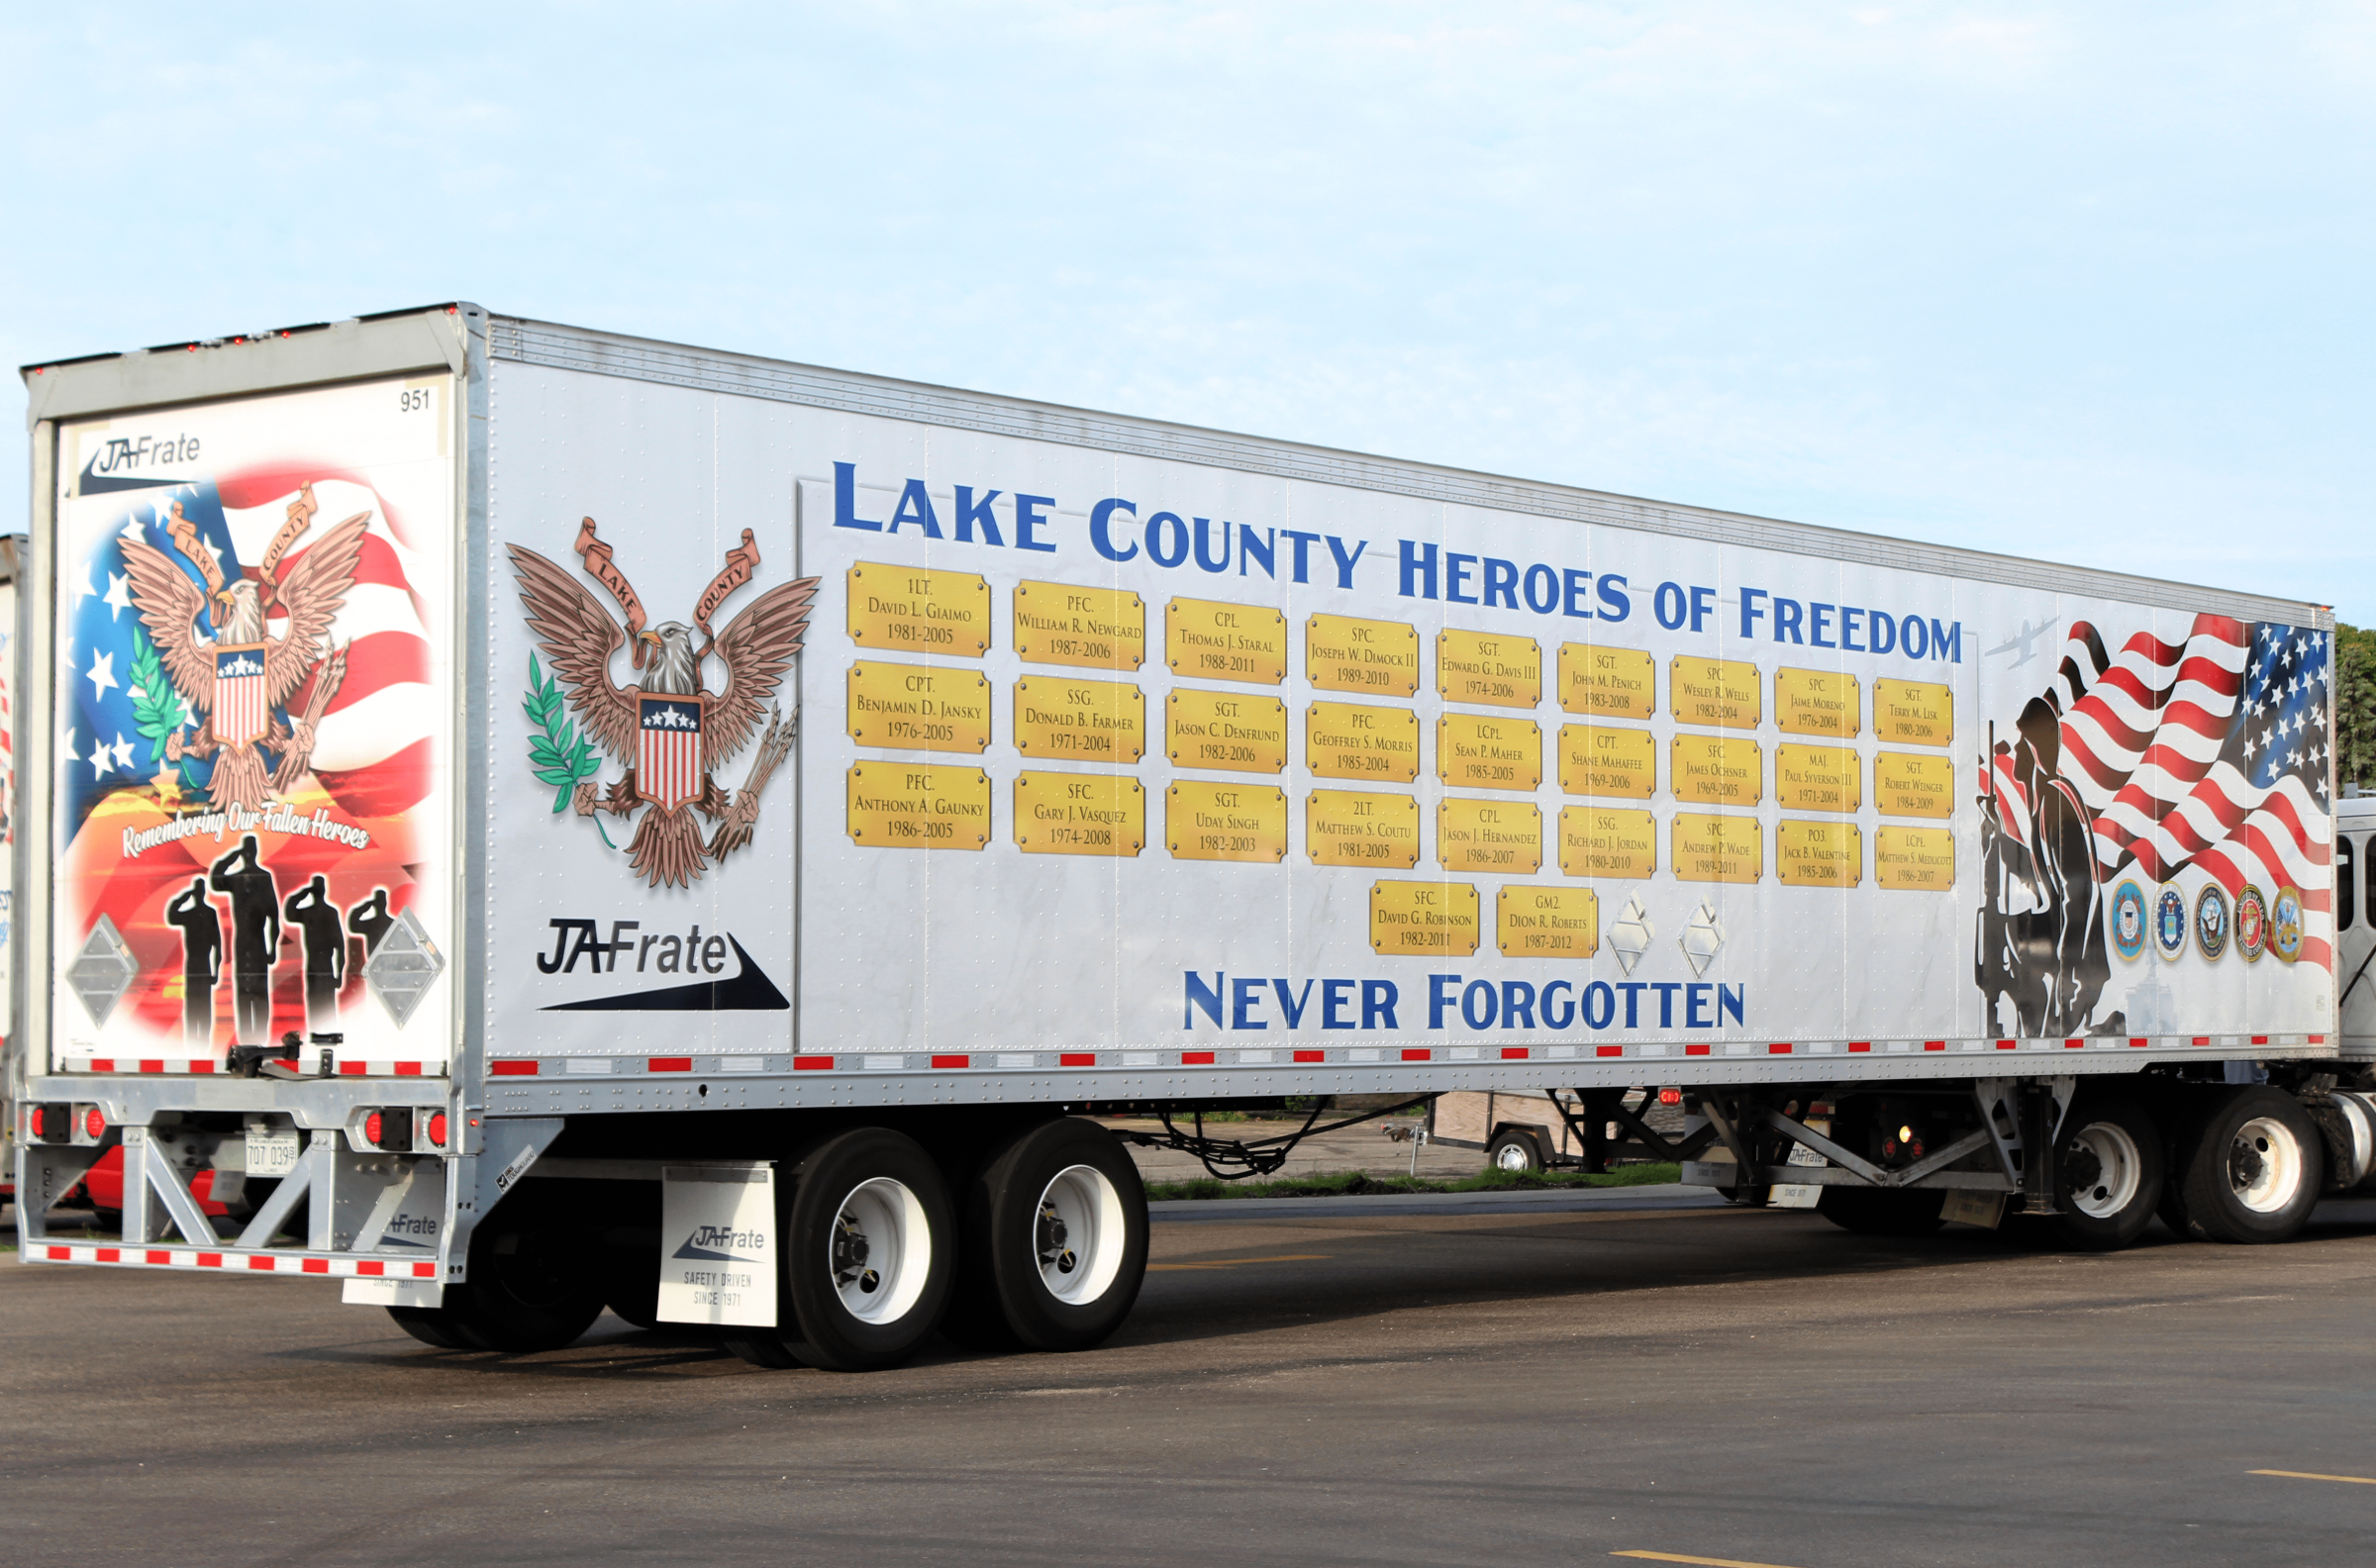 The Third JA Memorial Trailer for all Lake County KIA Personnel